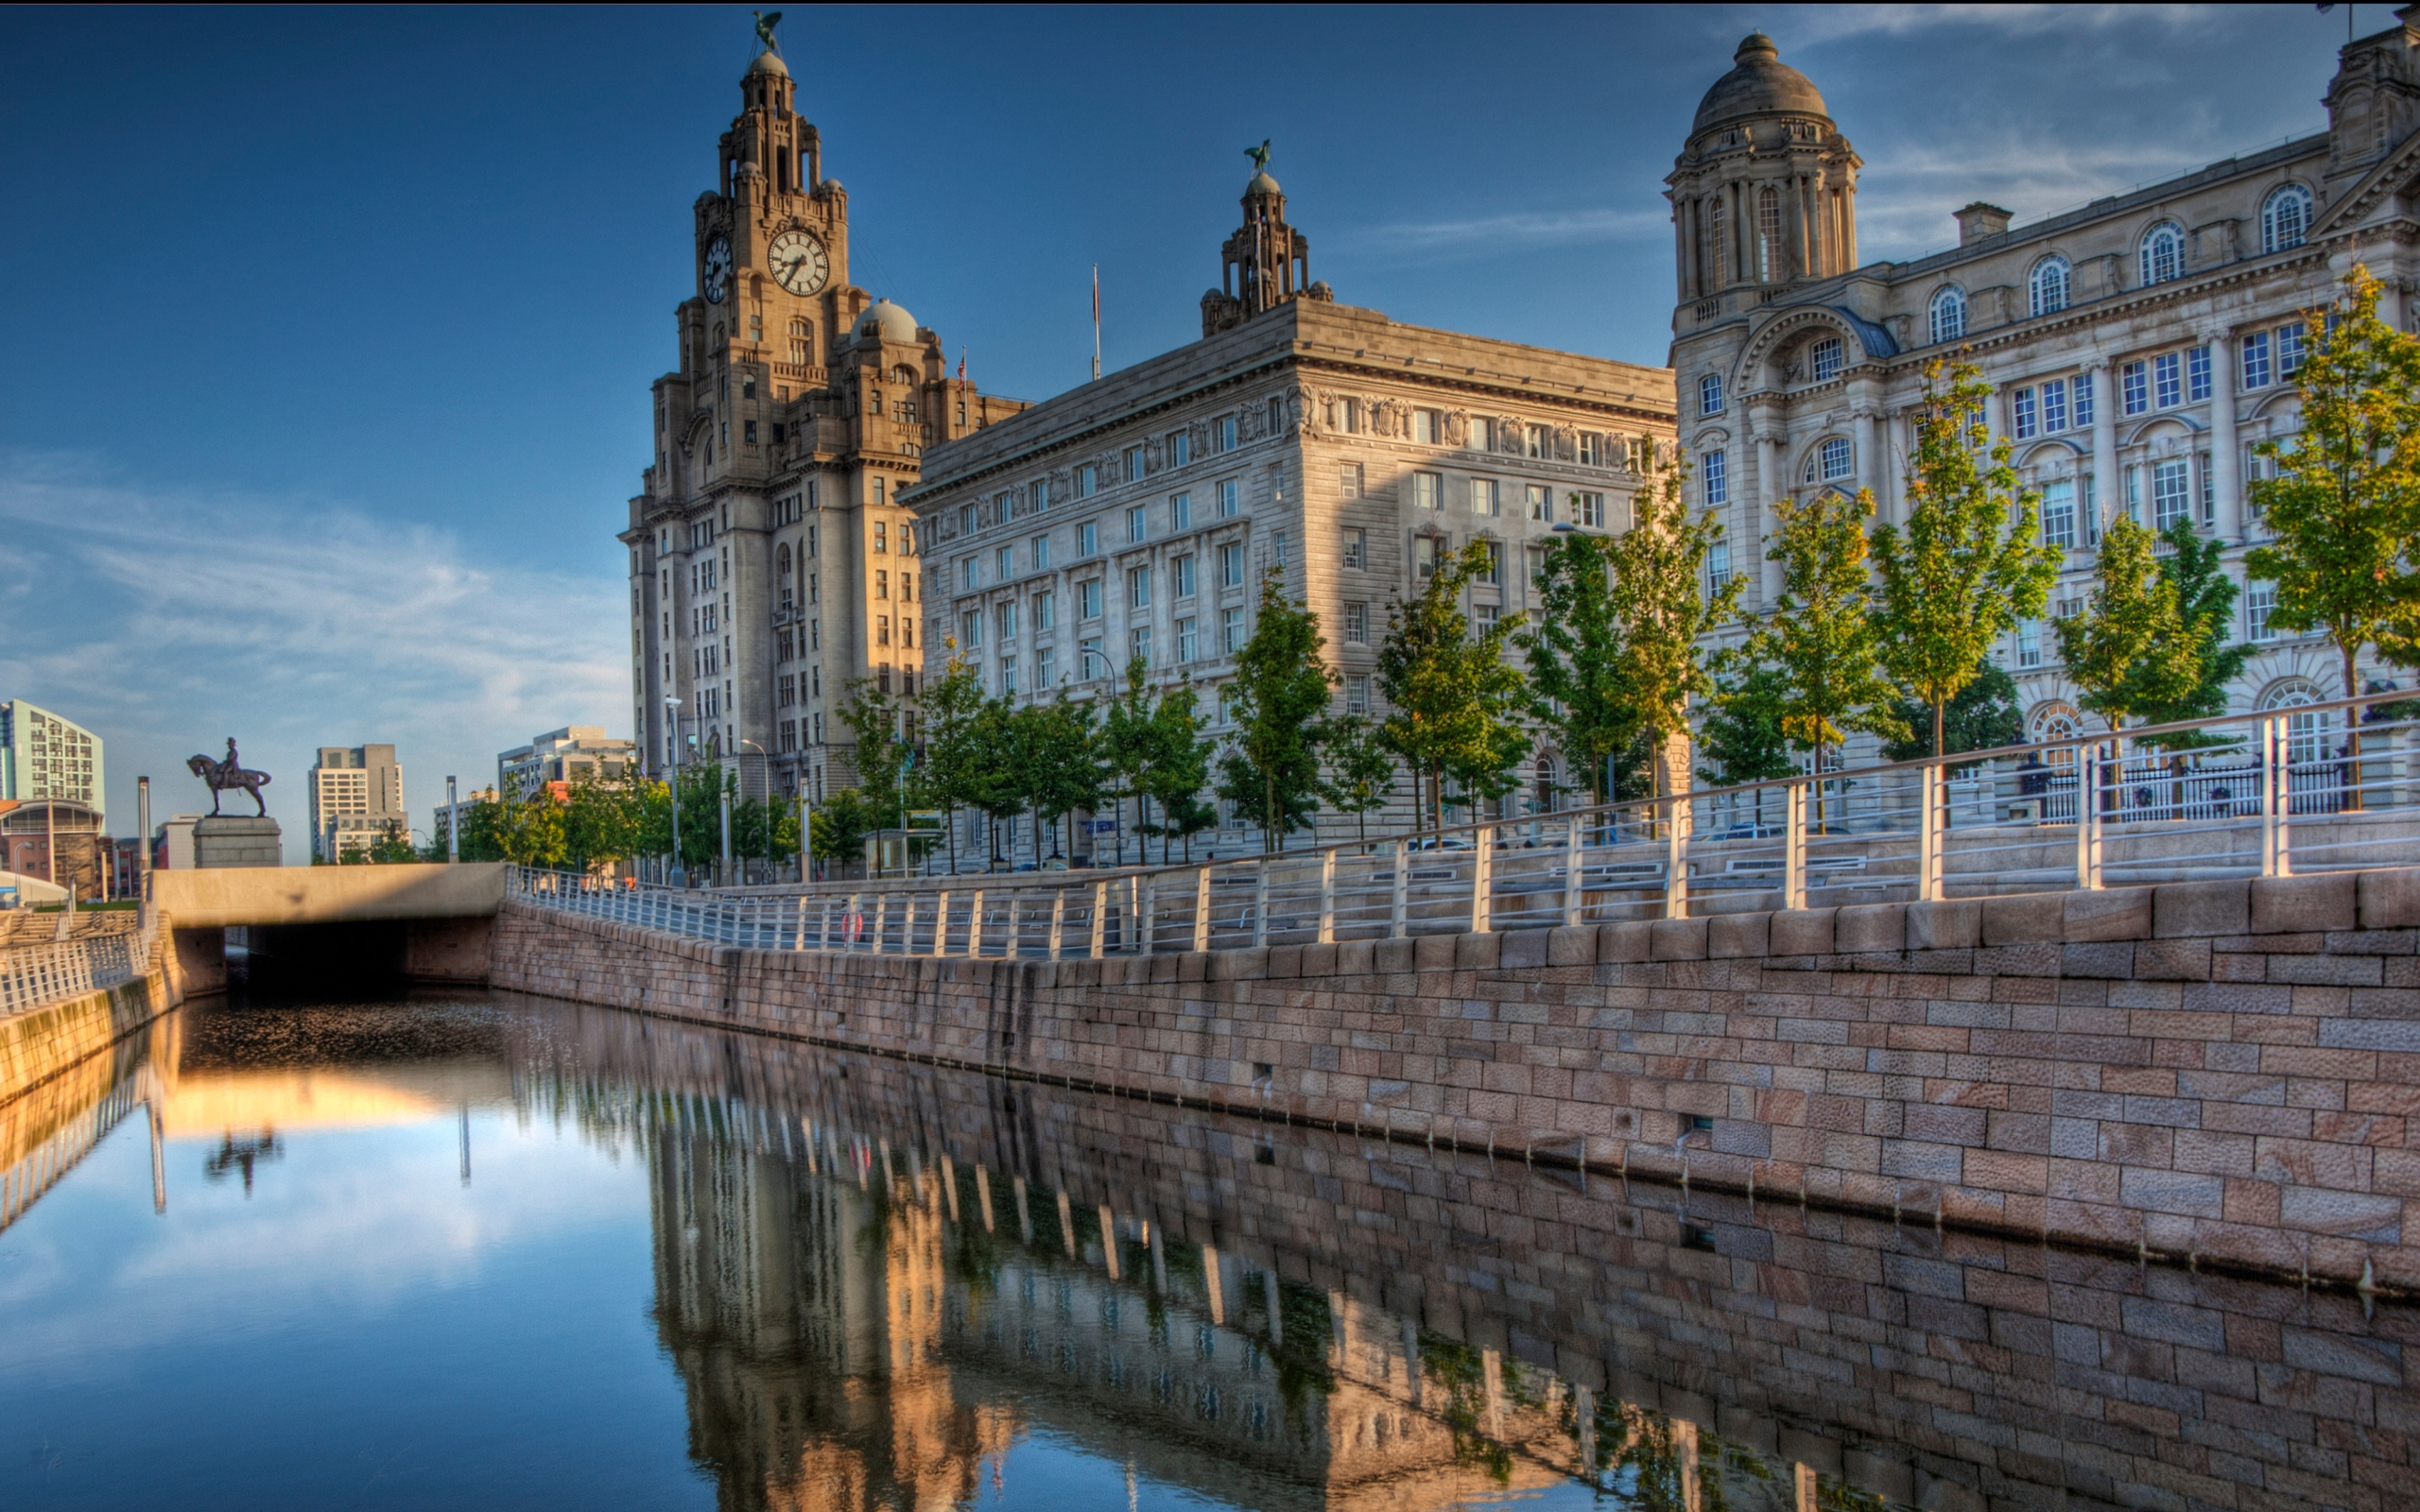 The Three Graces In Liverpool Hd Wallpaper Background Image 2560x1600 Id 500241 Wallpaper Abyss